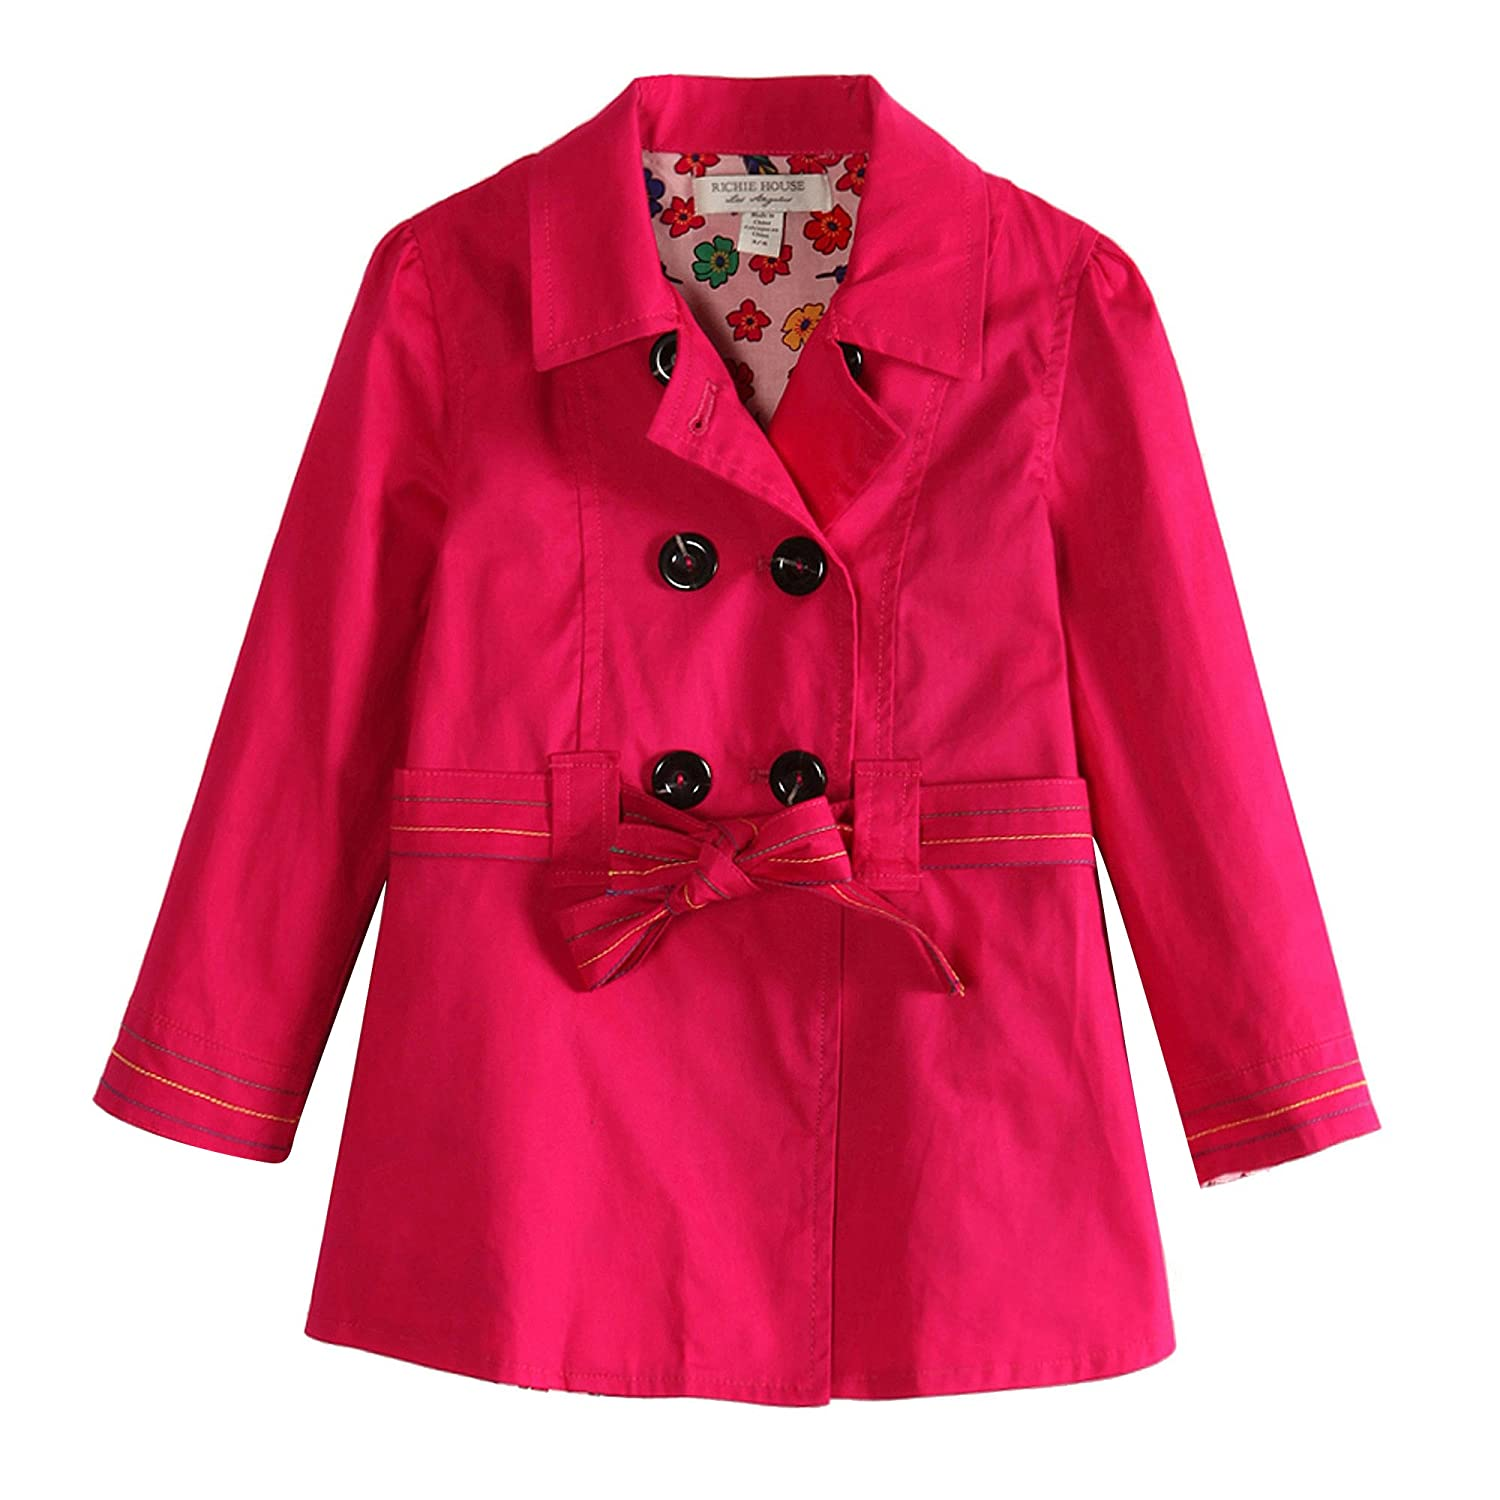 Richie House Girls' Colored Trench Coat with Floral Lining Fabric Rh0768